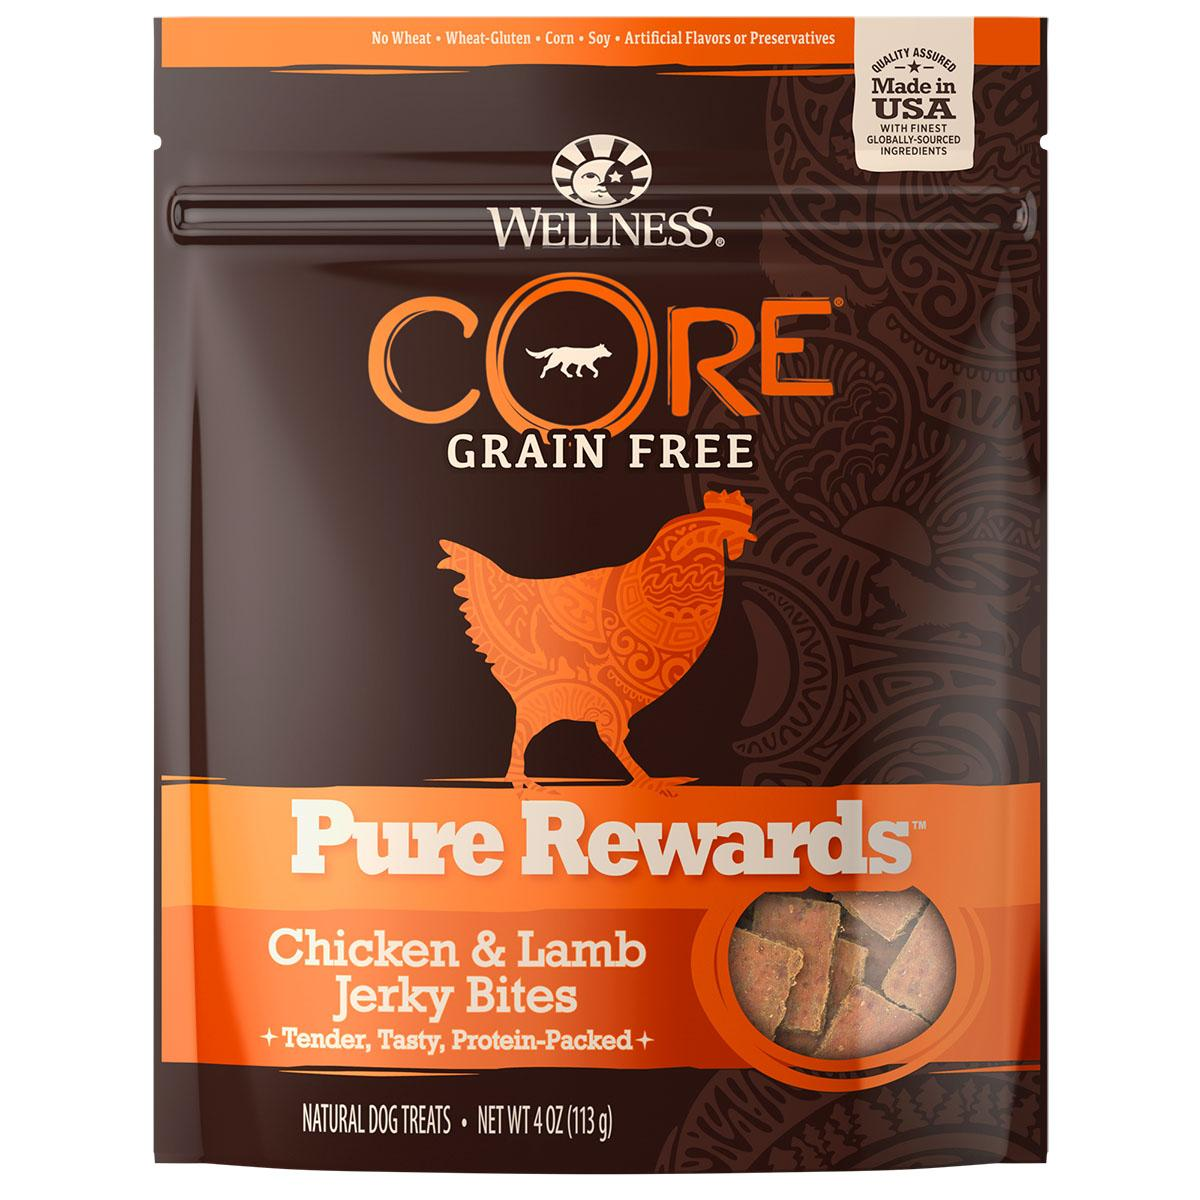 Wellness CORE Natural Grain Free Pure Rewards Jerky Bites - Chicken & Lamb